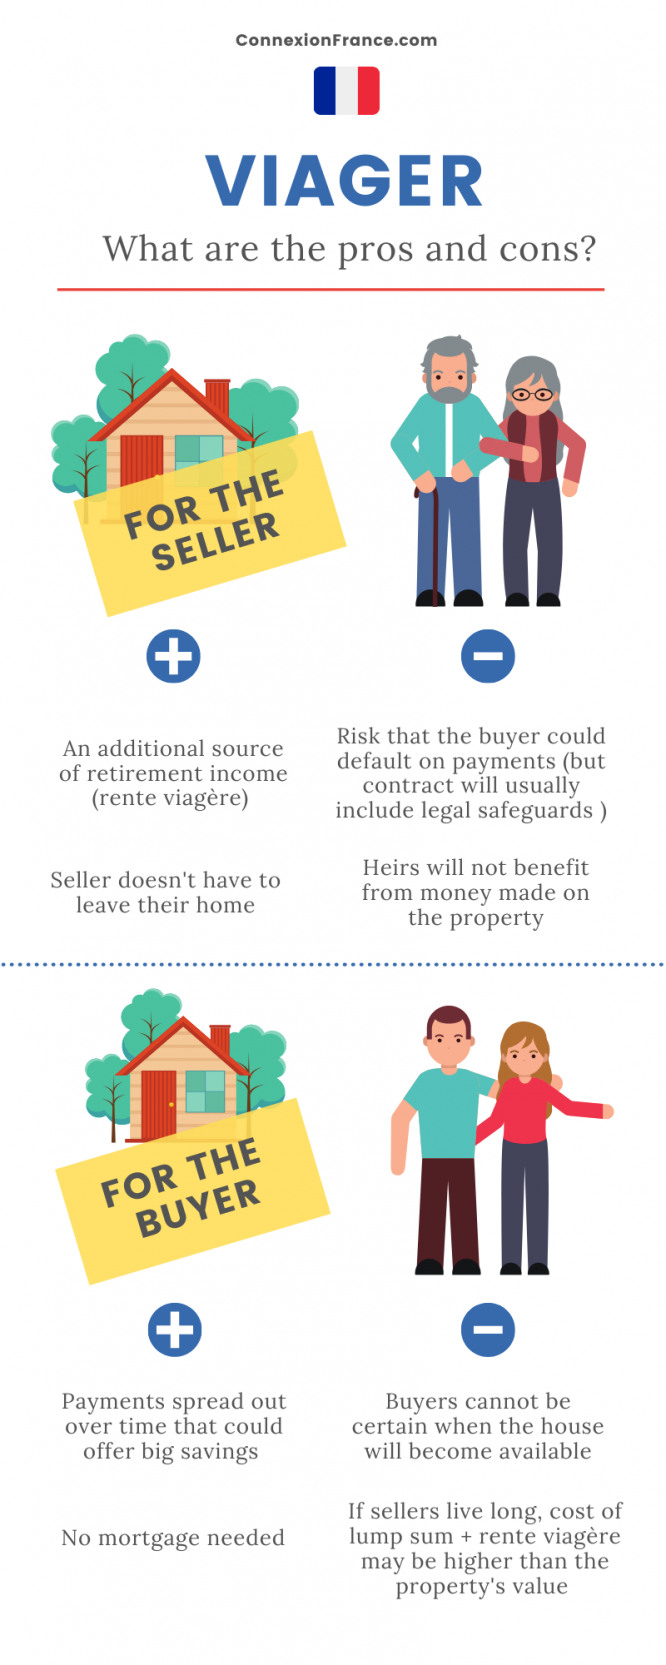 An infographic showing the pros and cons of buying or selling property en viager in France